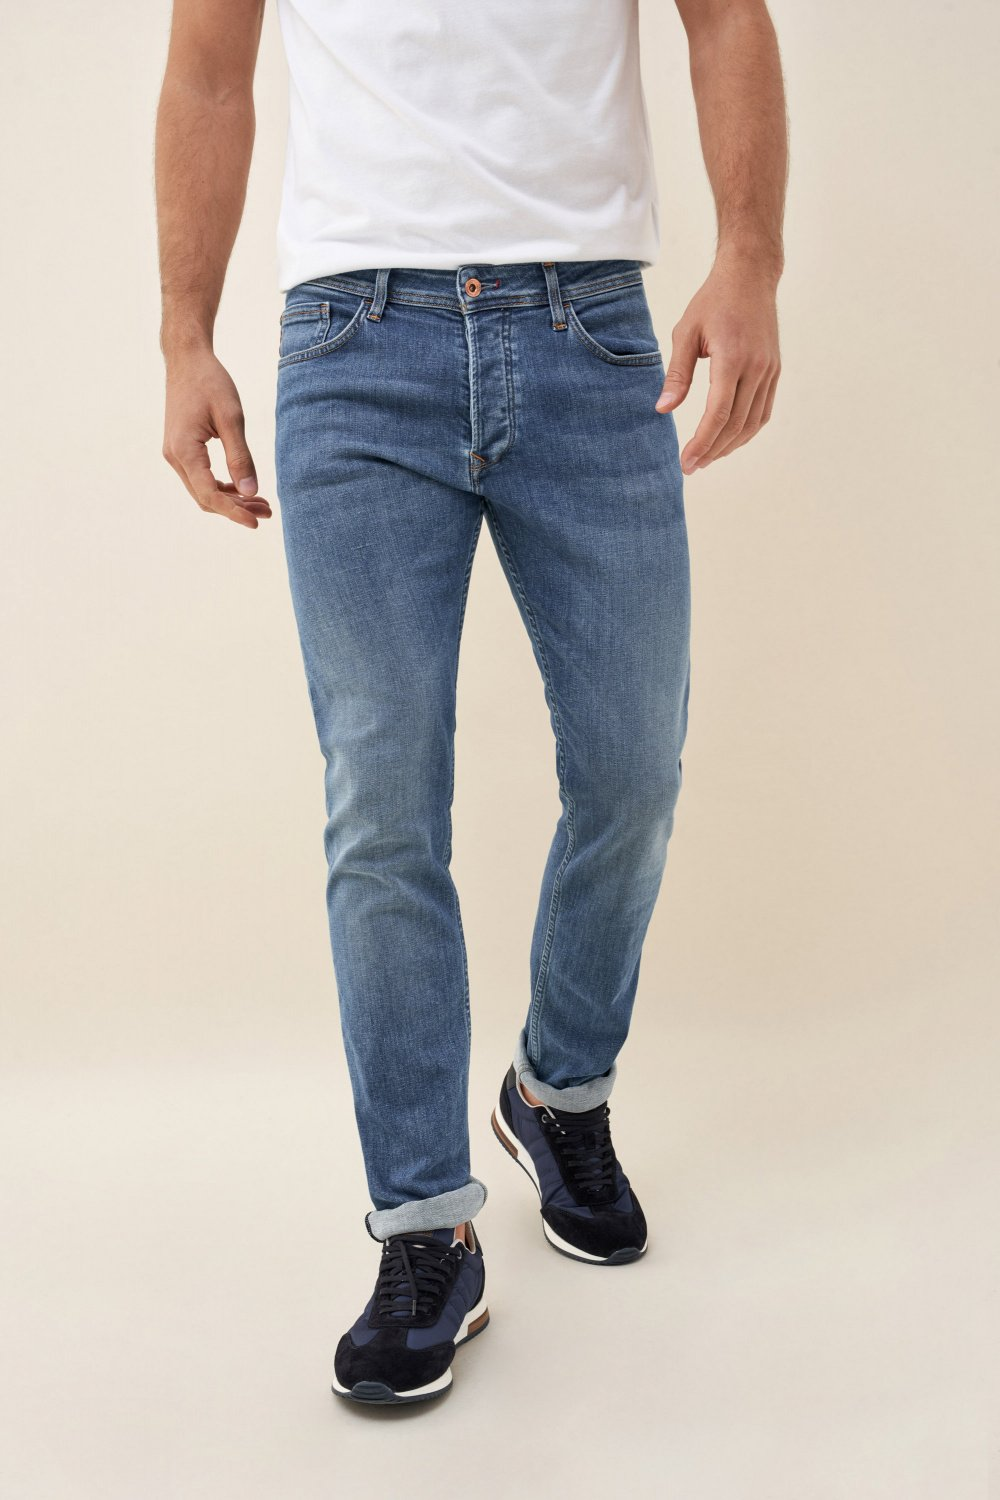 Jeans Lima, Tapered, Rip-Proof - Salsa